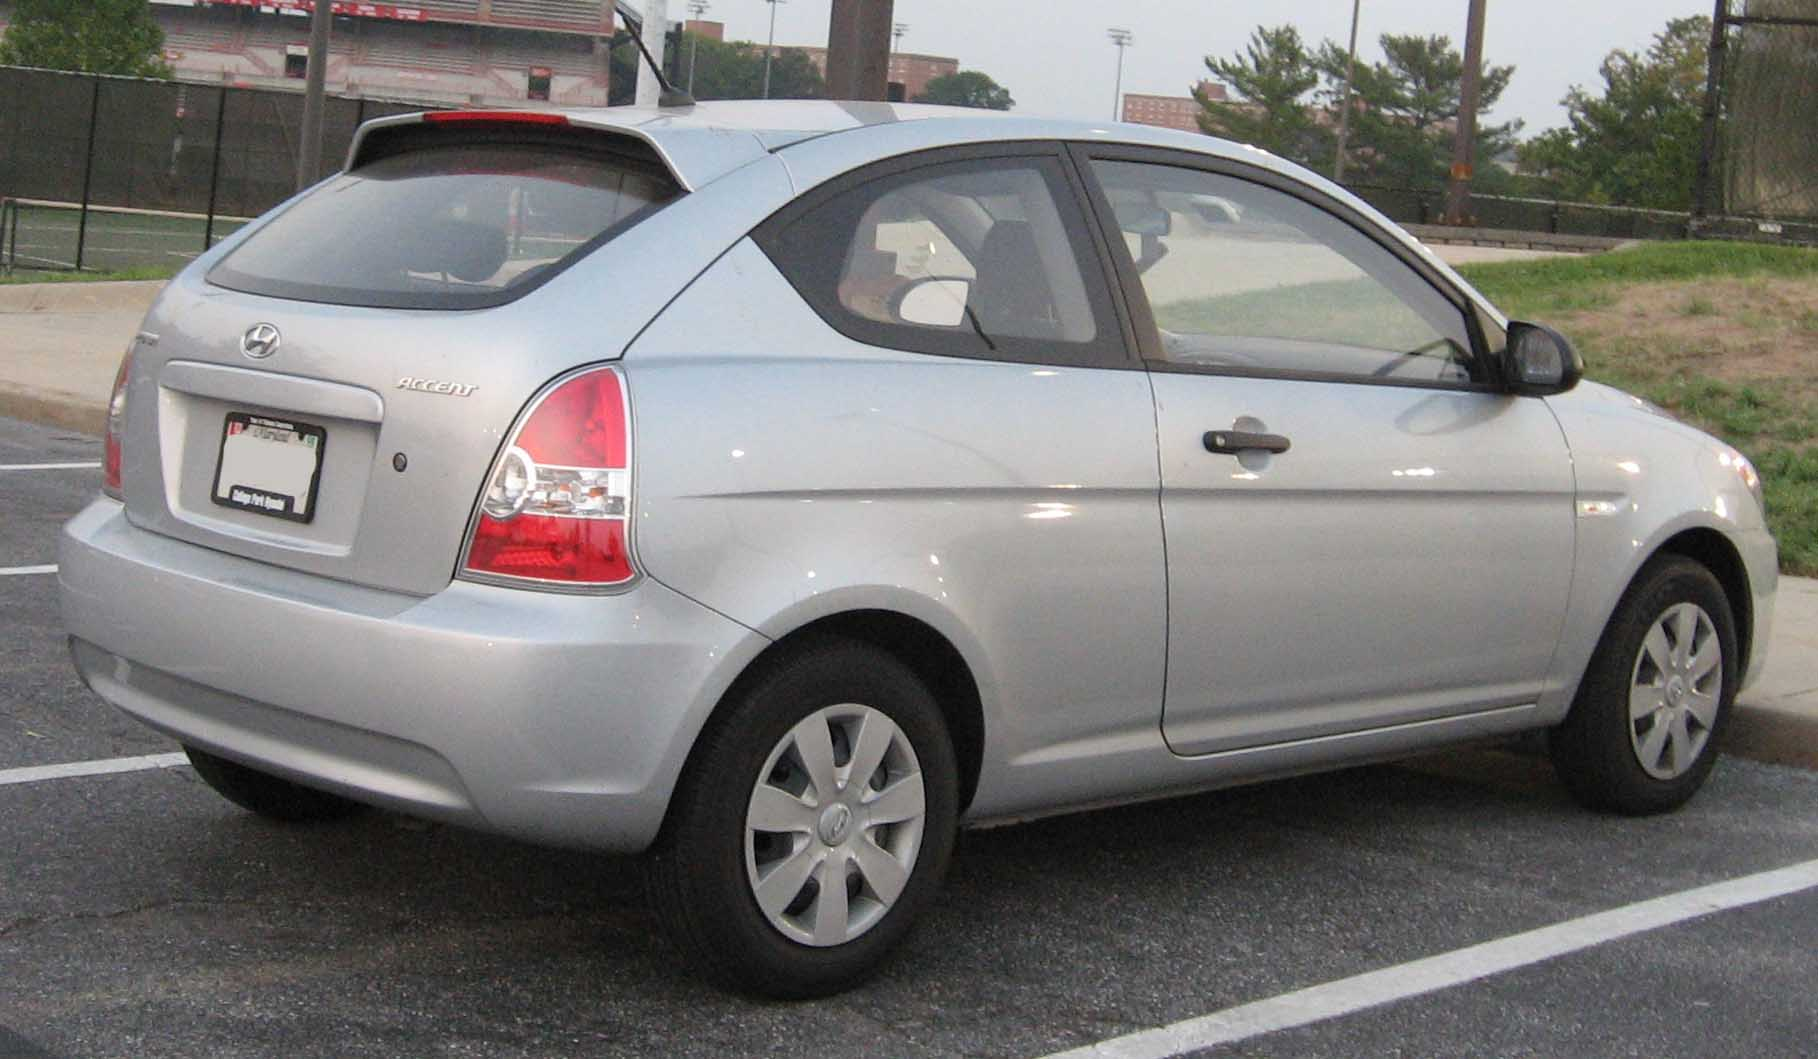 file hyundai accent hatchback rear wikimedia commons. Black Bedroom Furniture Sets. Home Design Ideas